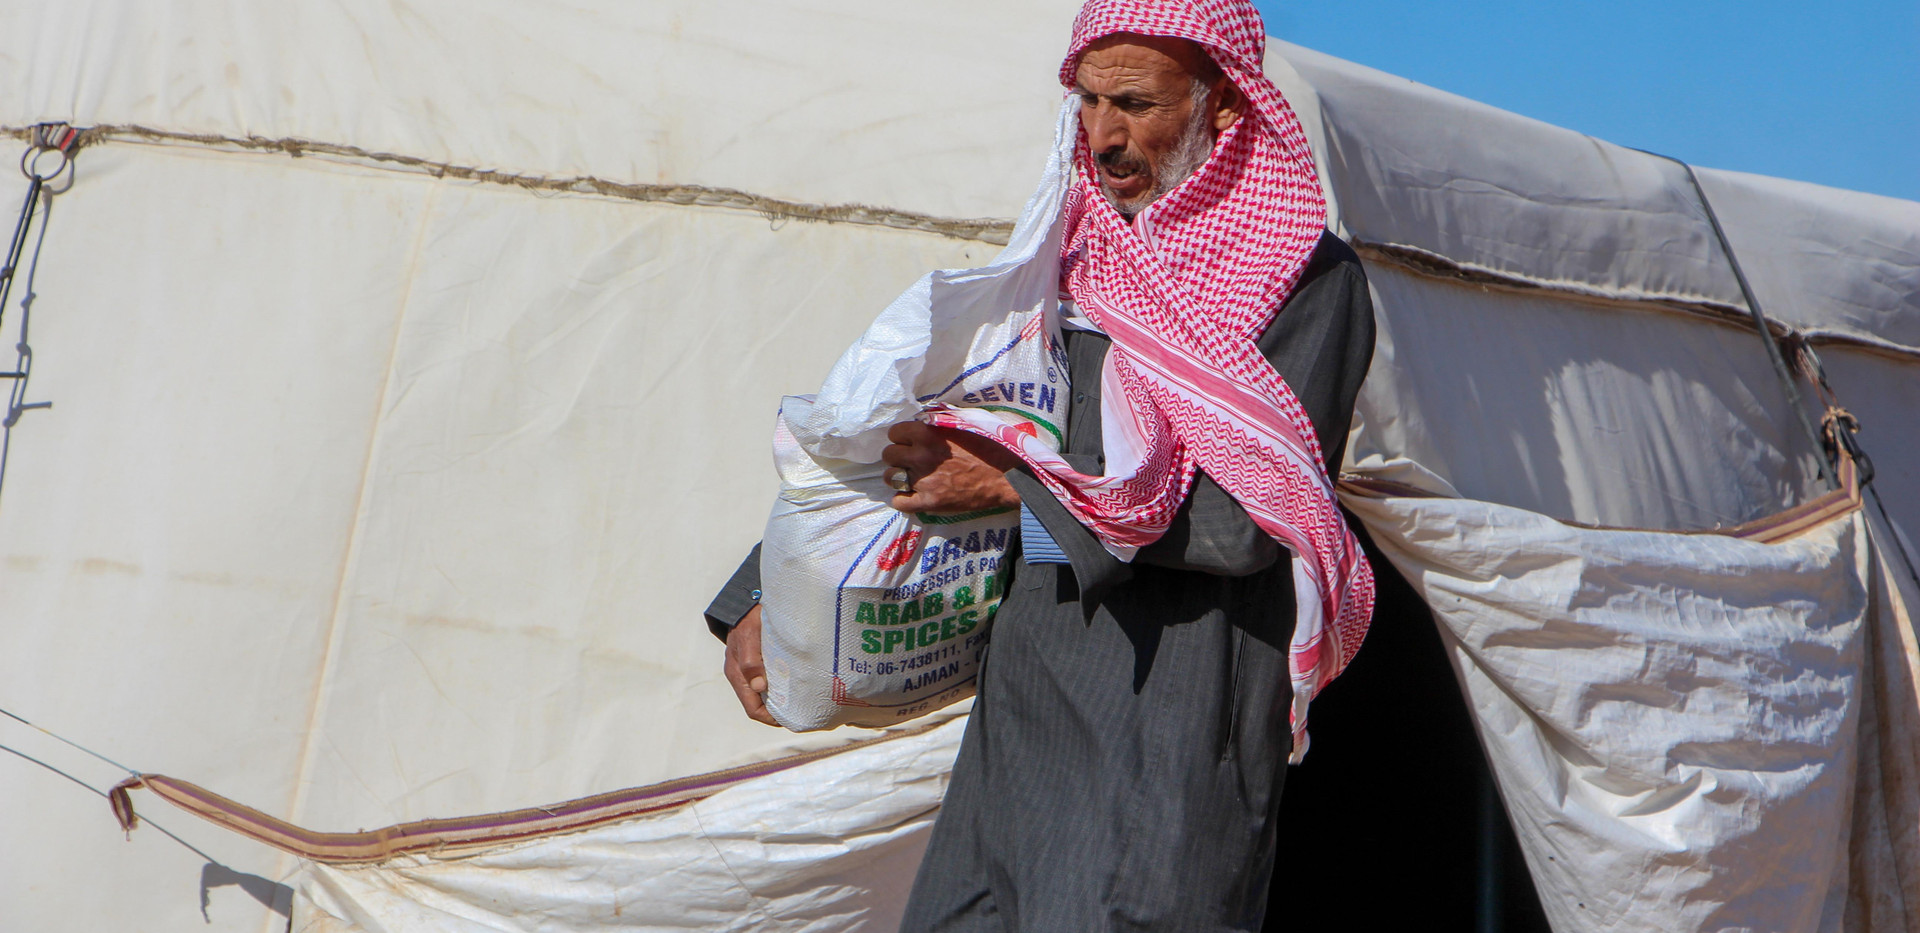 Food Aid Distribution to Syrian Refugees in Jordan